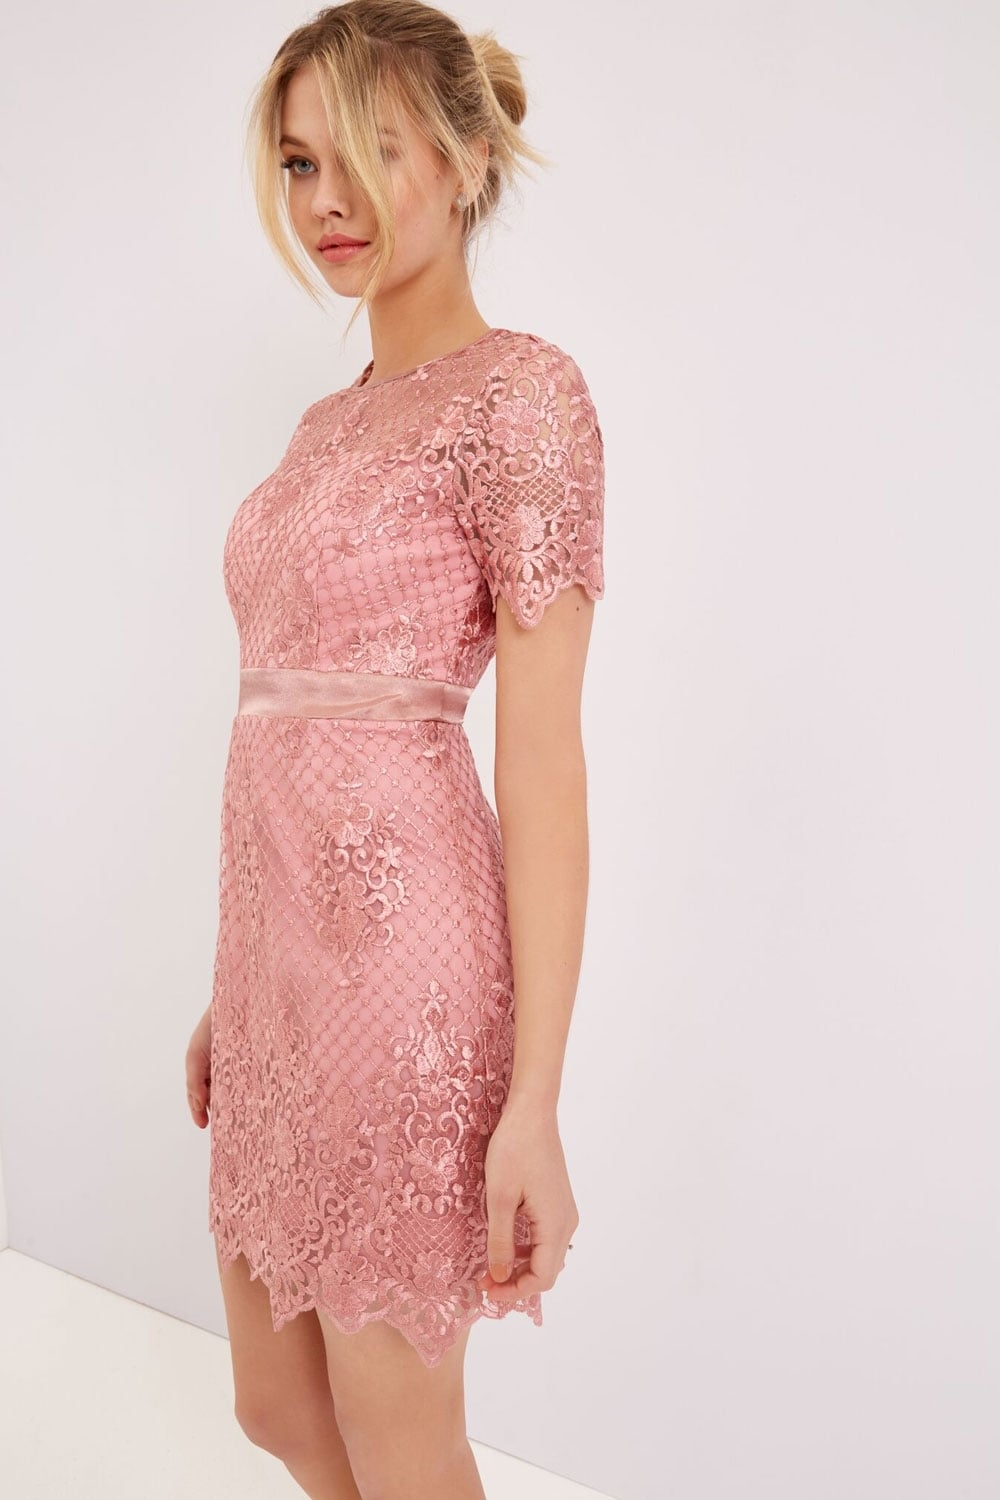 22db220c209 Outlet Girls On Film Pink Lace Mini Dress - Outlet Girls On Film ...